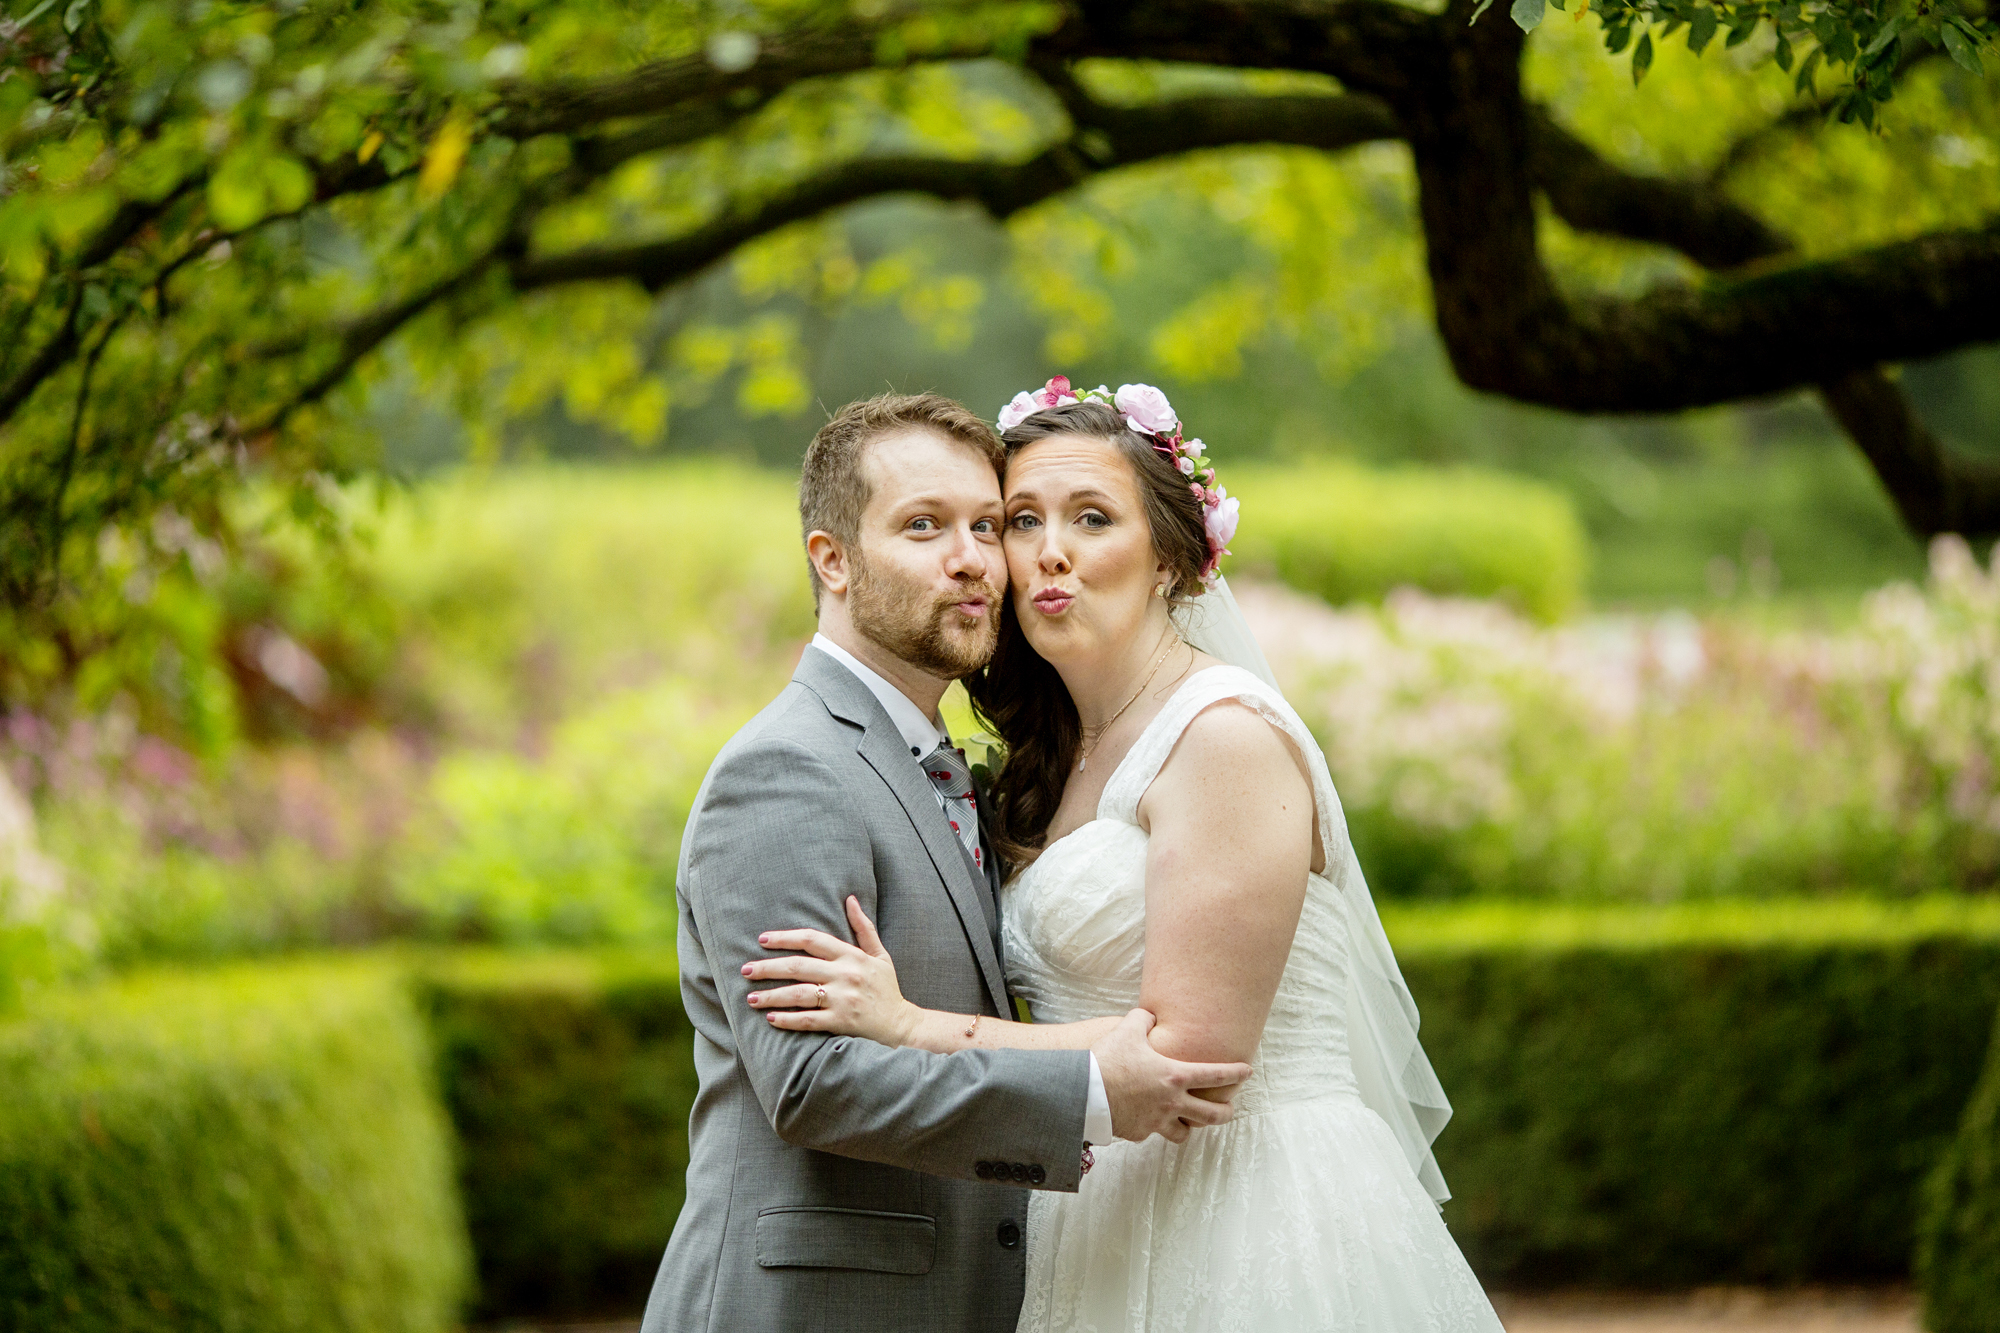 Seriously_Sabrina_Photography_Lisle_Illinois_Morton_Arboretum_Wedding_Day_Gowen31.jpg